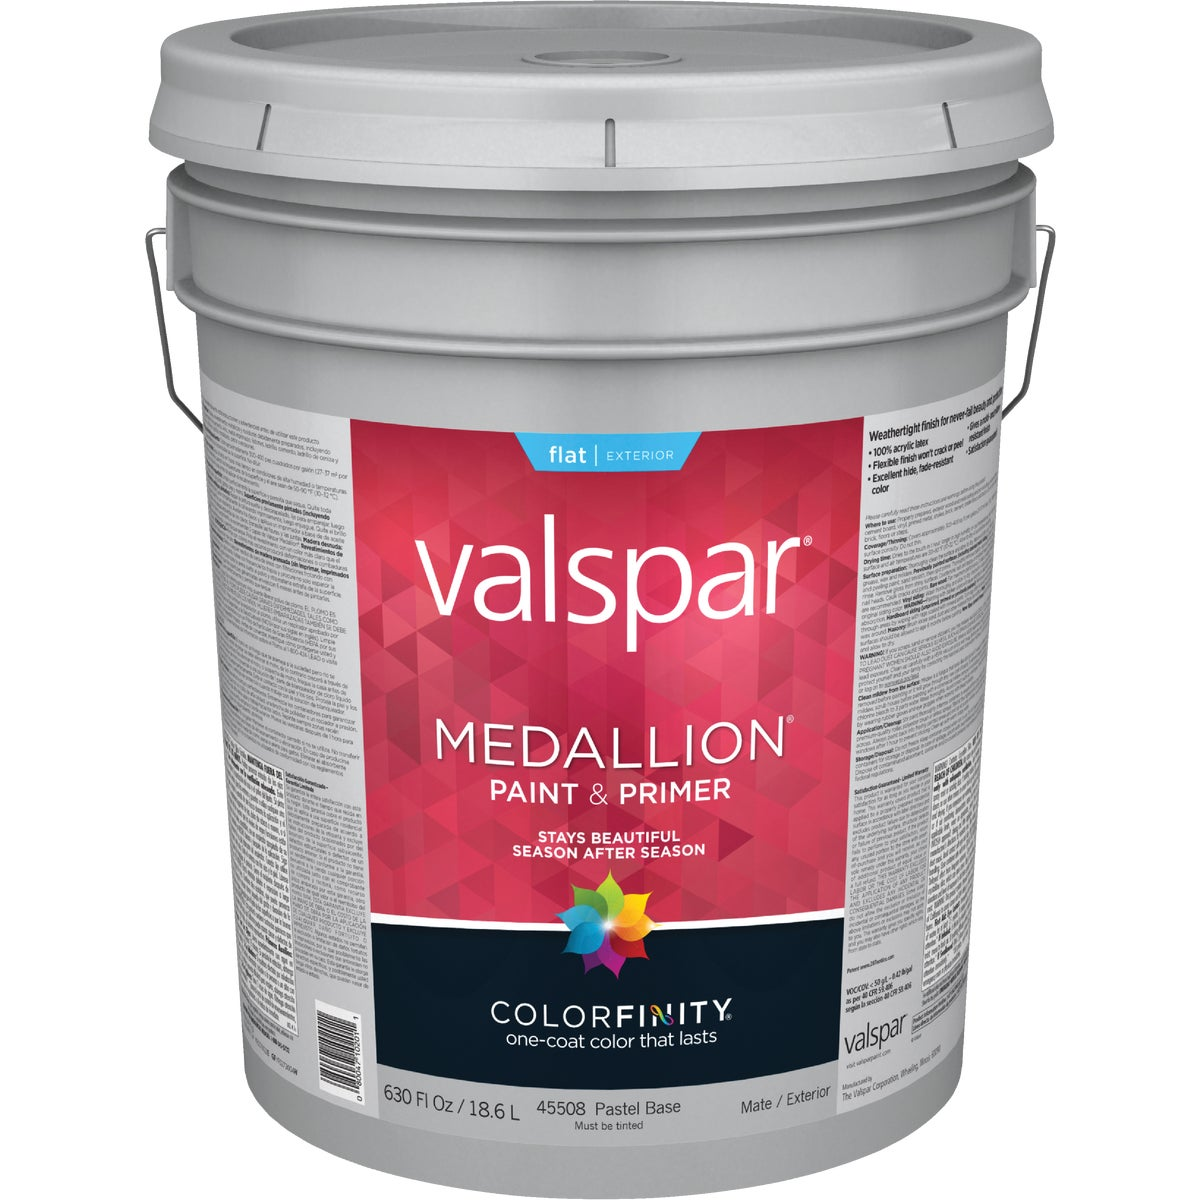 EXT FLAT PASTEL BS PAINT - 027.0045508.008 by Valspar Corp